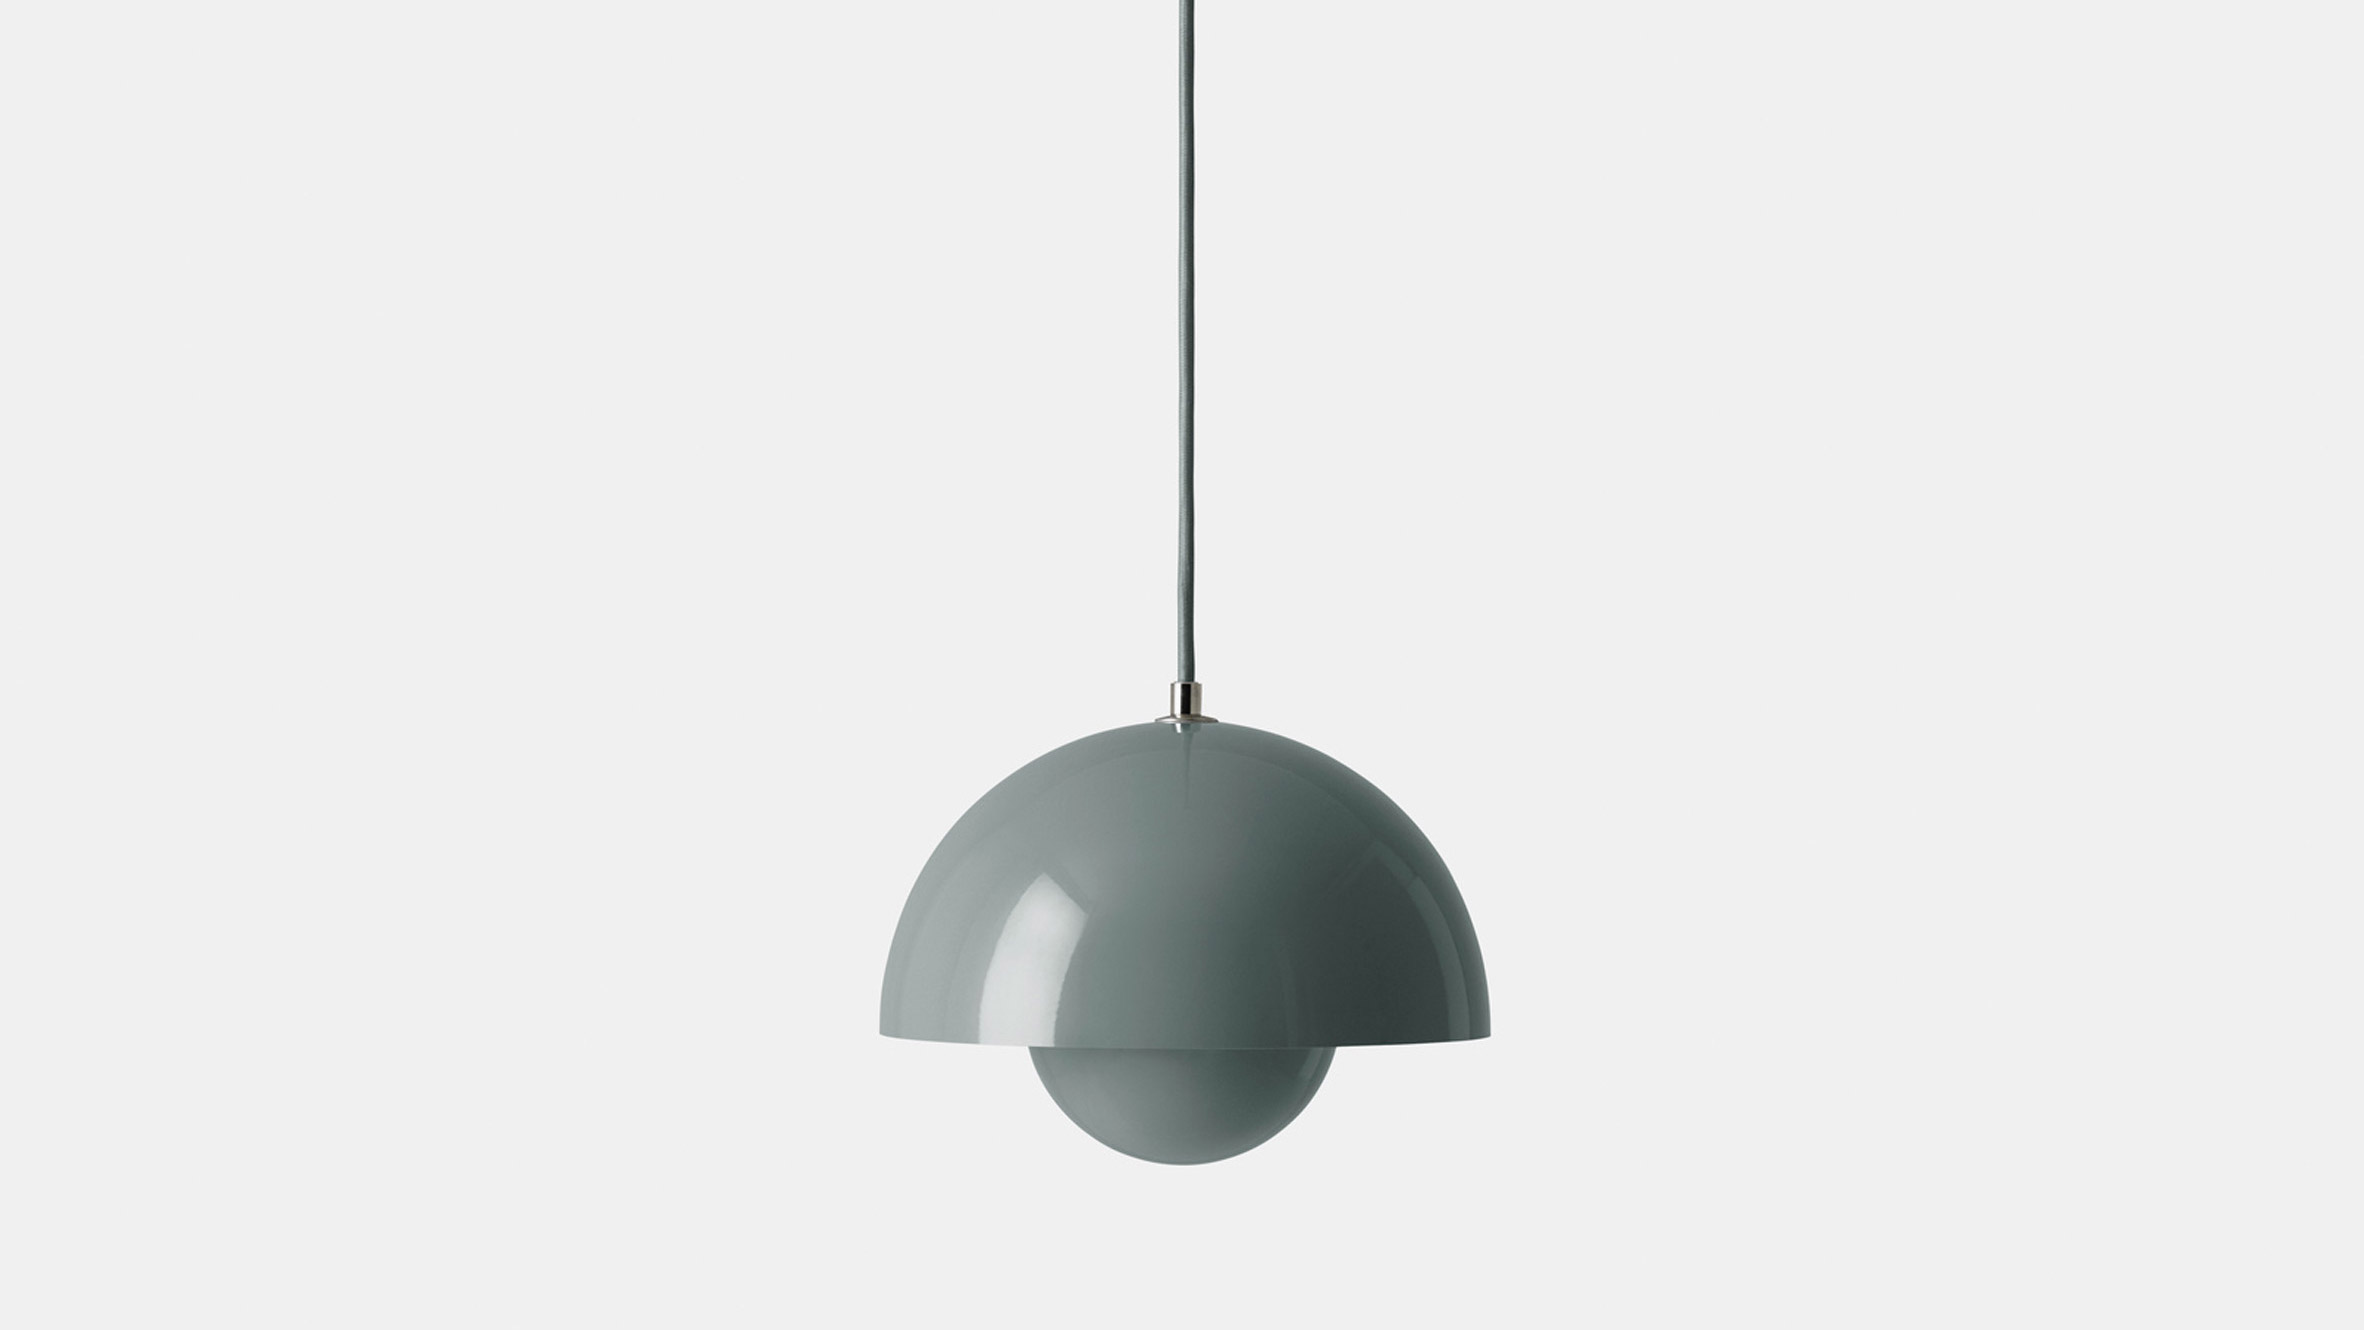 A steely blue pendant light by Verner Panton for &tradition